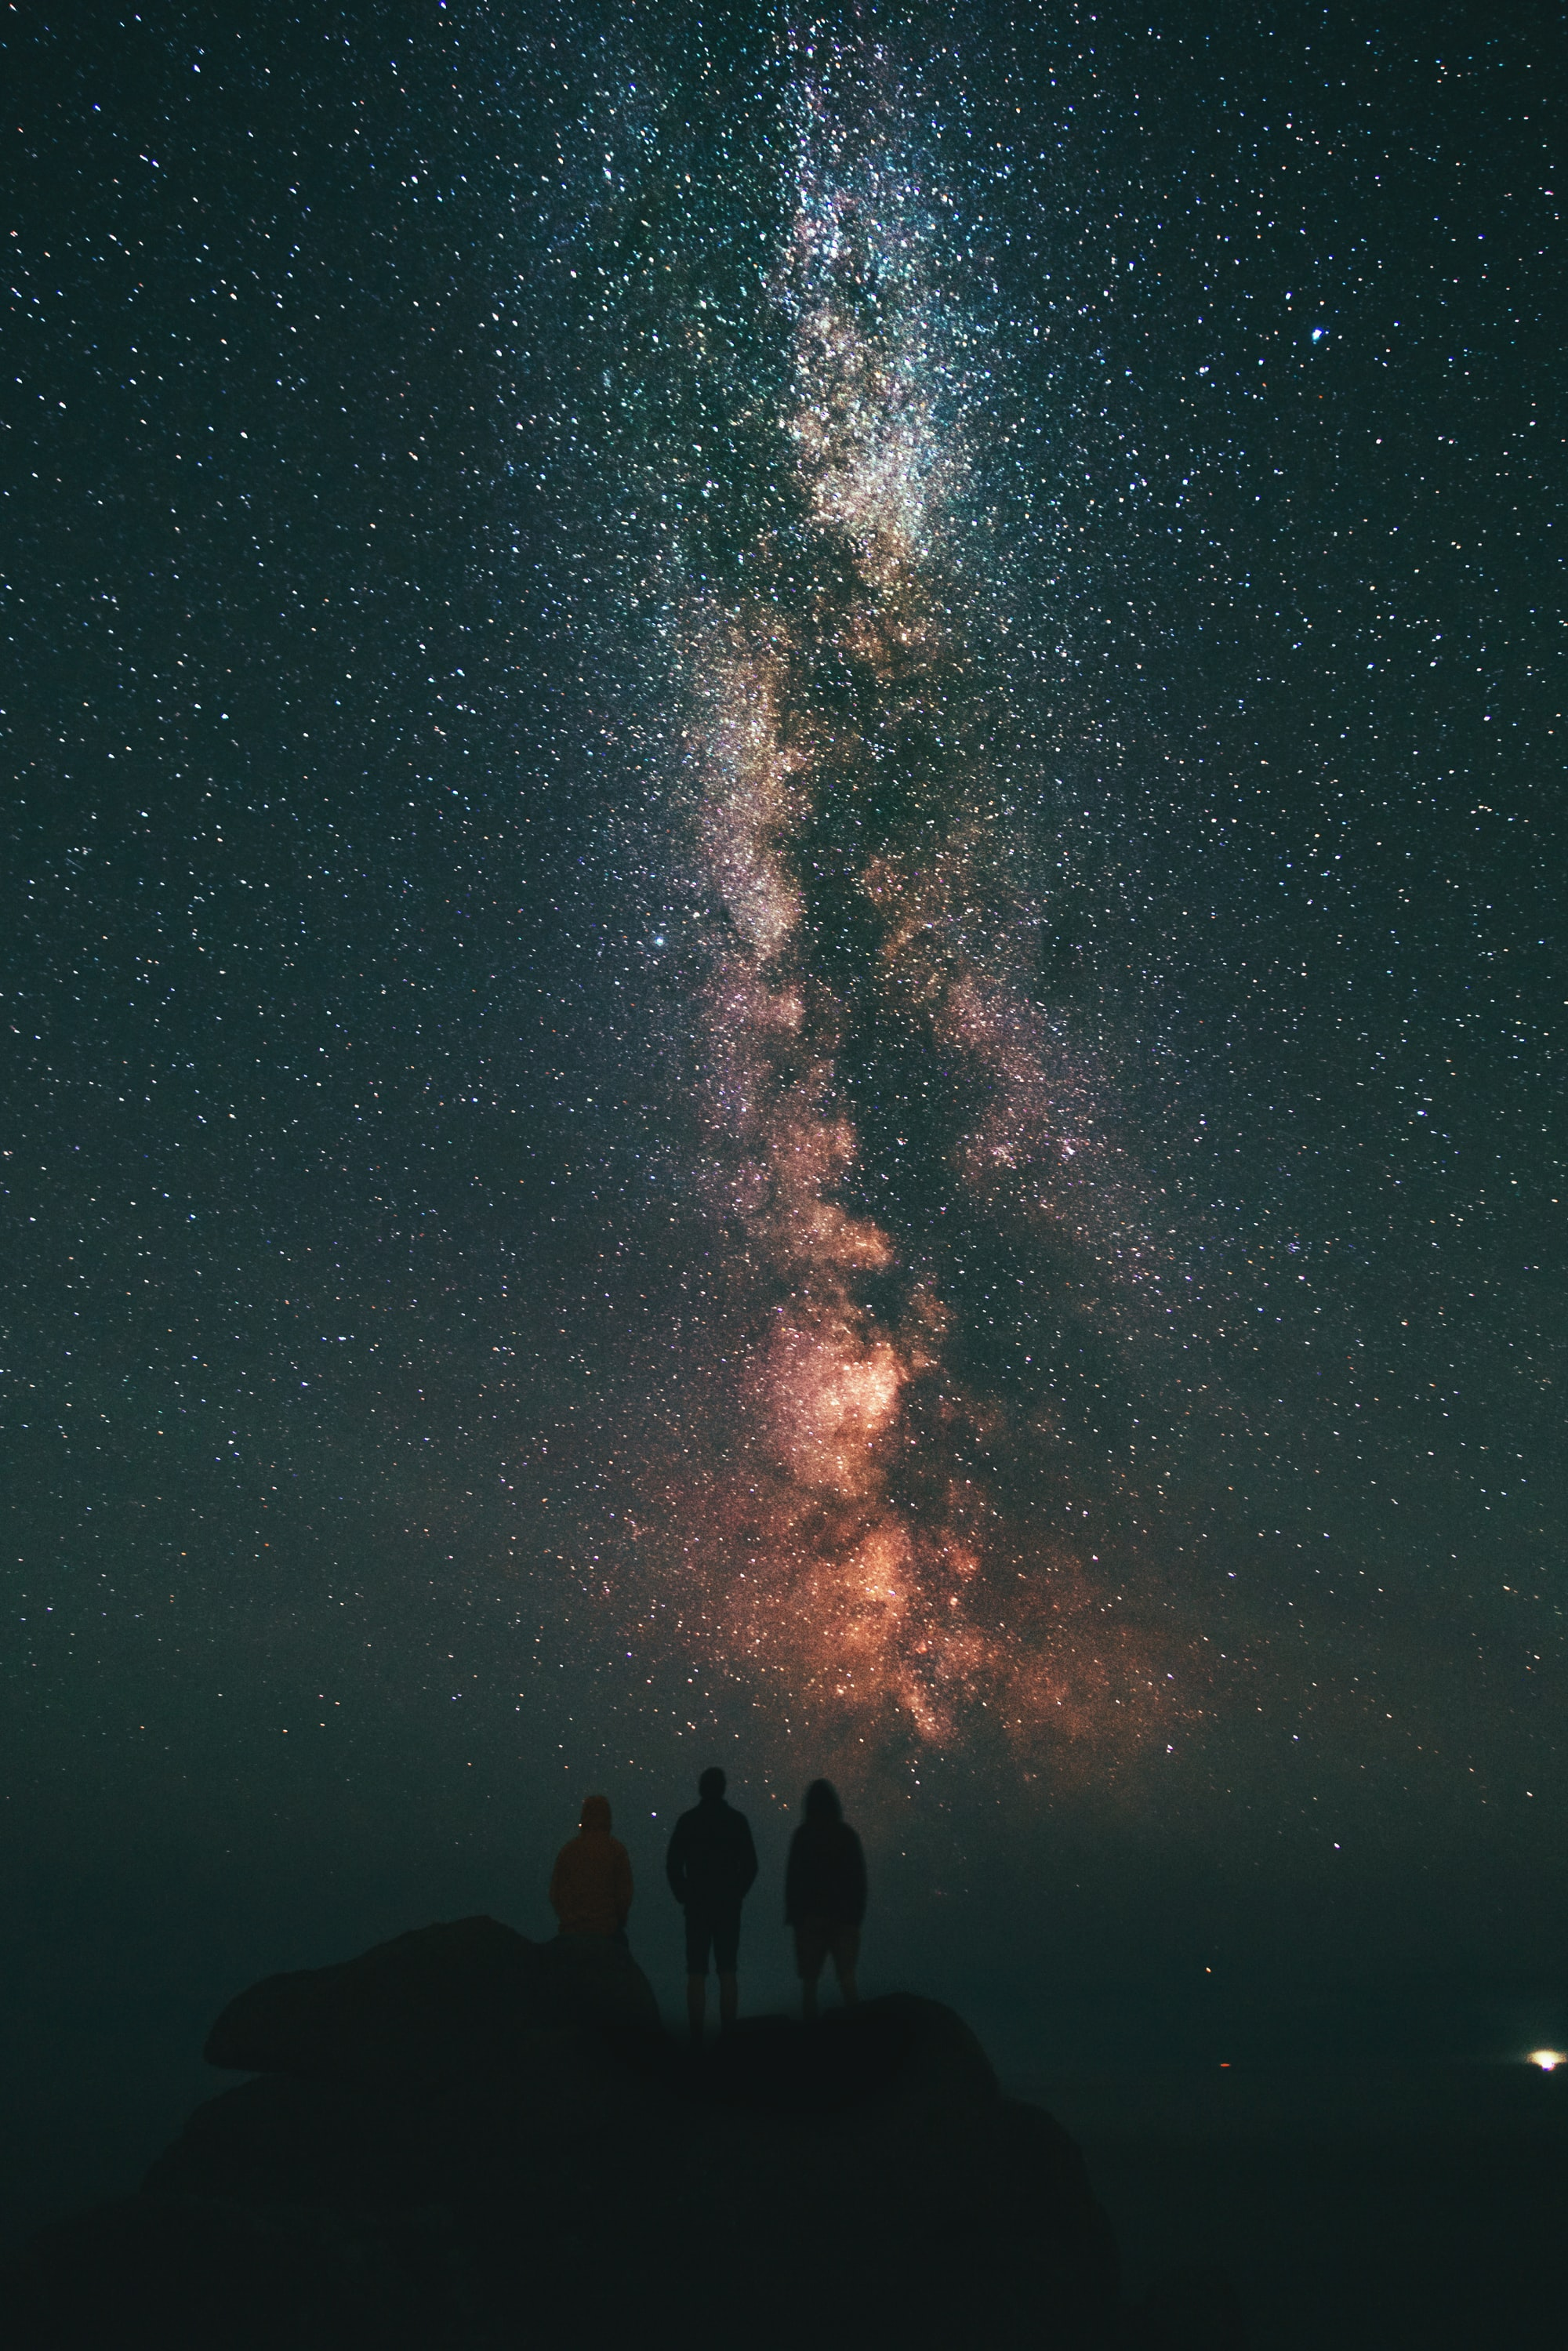 We are so small compared to the inconceivably vast universe. When looking into the milky way you wonder what else is out there. The universe we live in is incredible ❤️